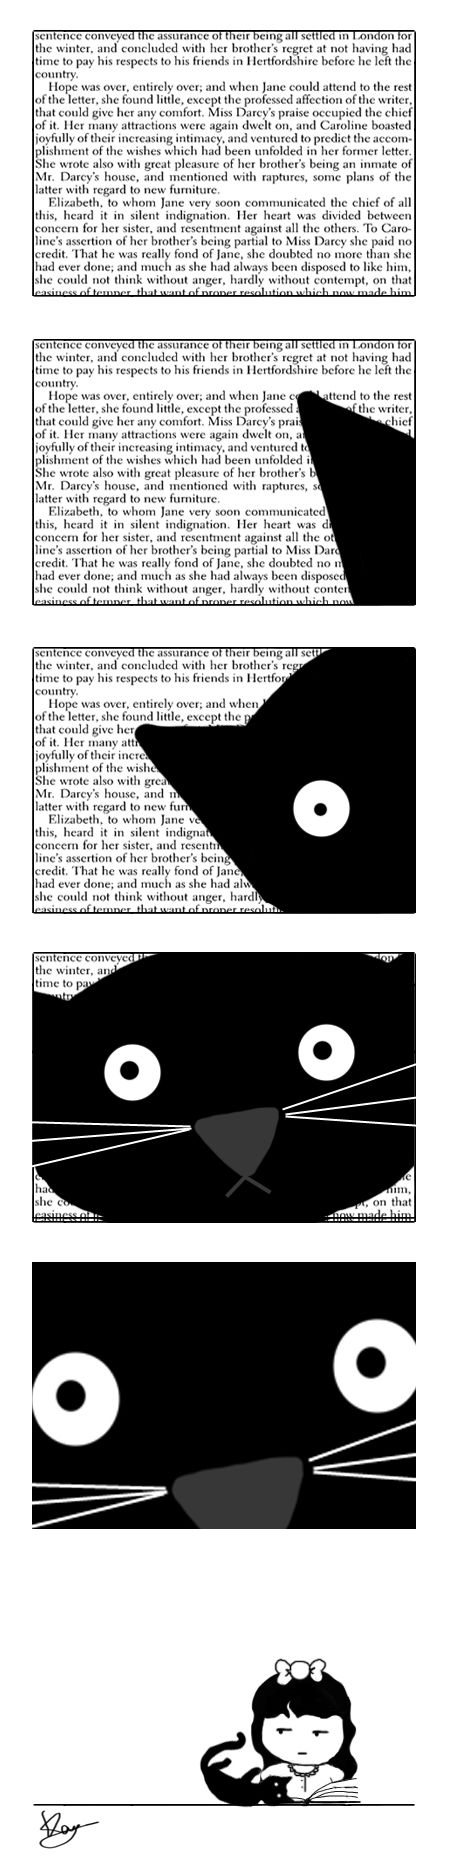 Reading a book with a cat - lol - so true :)